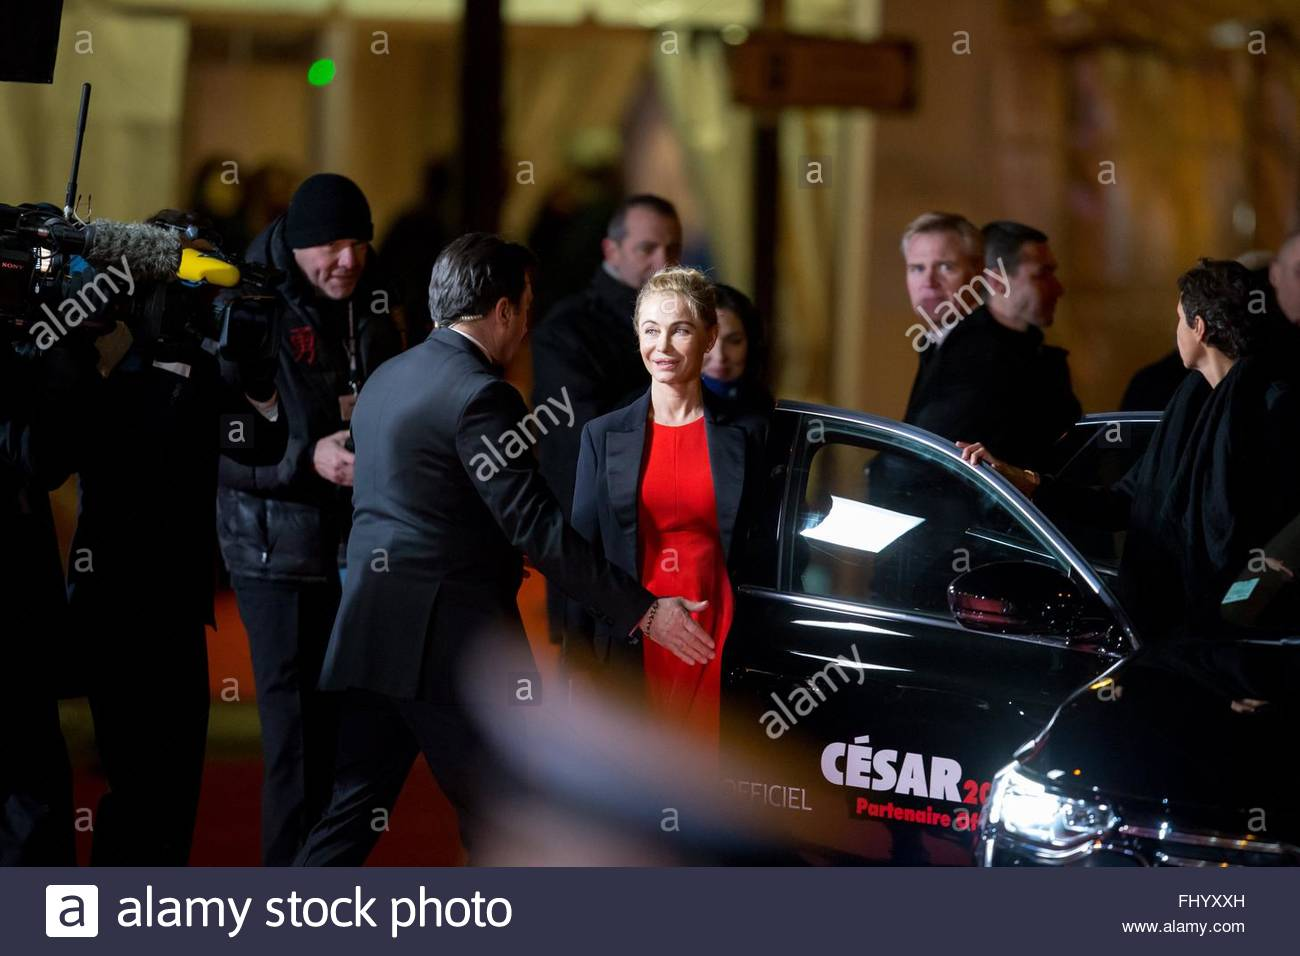 Paris, France. February 26th, 2016. FRANCE, Paris: French actress Emmanuelle Béart walks on the red carpet of the Stock Photo